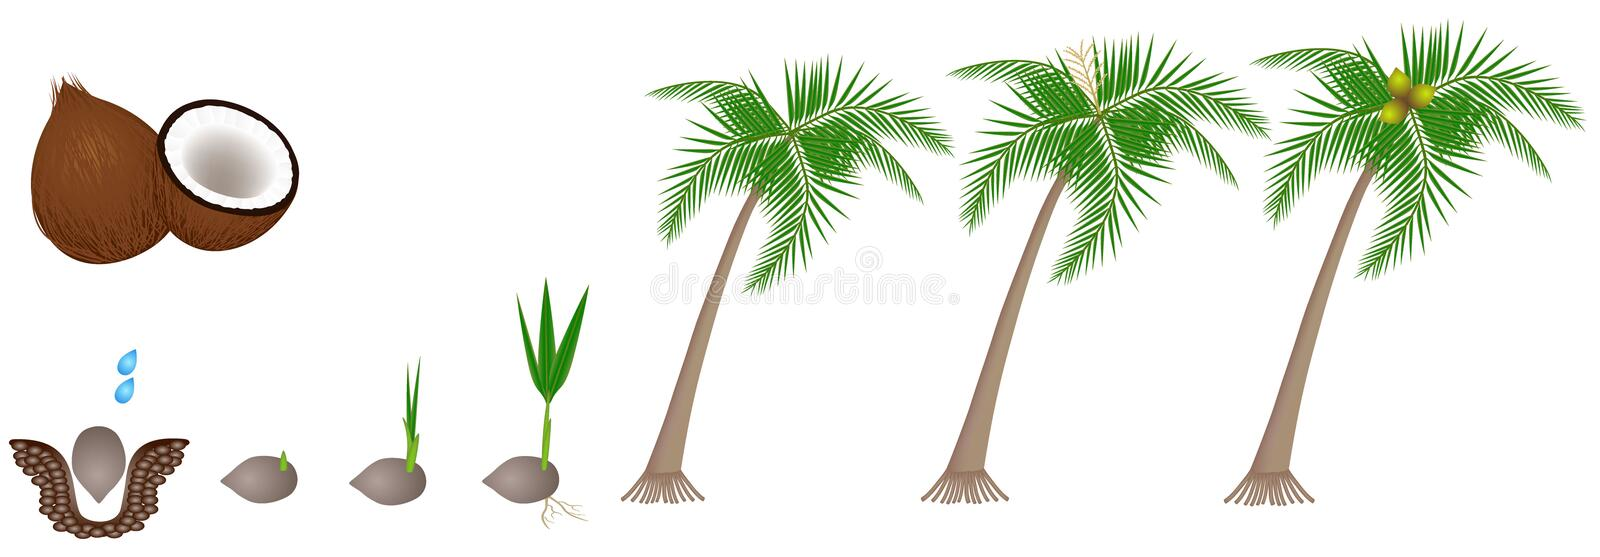 Cycle of growth of a plant of a coconut isolated on a white background. Cycle of growth of a plant of a coconut isolated on a white background, beautiful stock illustration